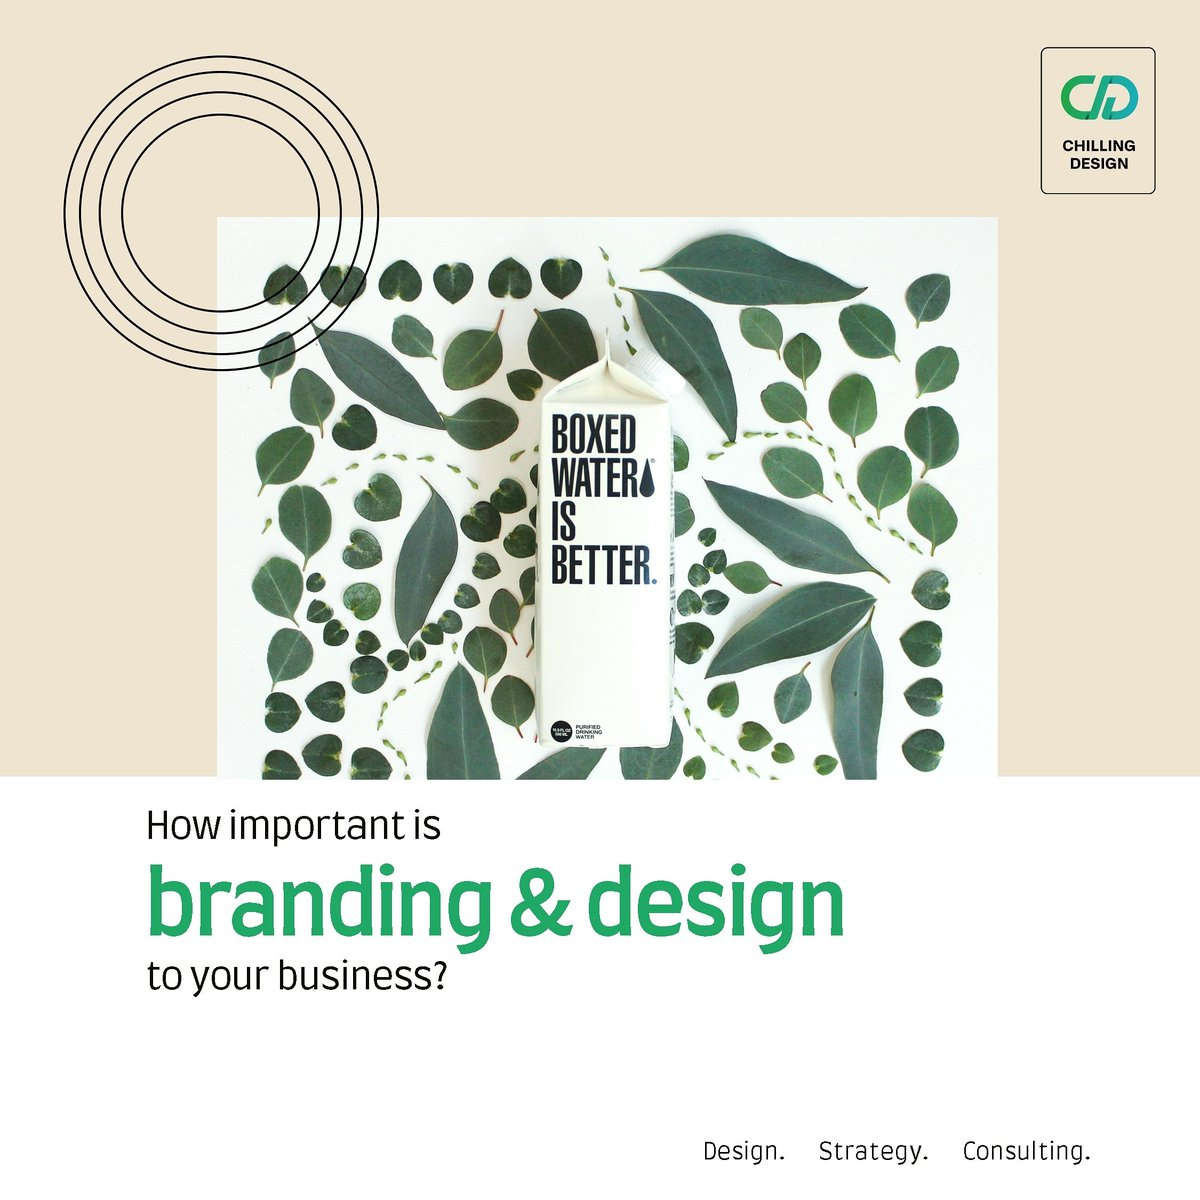 How important is branding and design to your business?  #learndesign #designinspiration #design #Ui #designidea #ux #userinterfacedesign #uitrends #uidesign #userexperience #uxigers #uxdesign #dribbble #behance #designsystems #designsystem #sketchapp #designerspic.twitter.com/ytk0R8KuYb